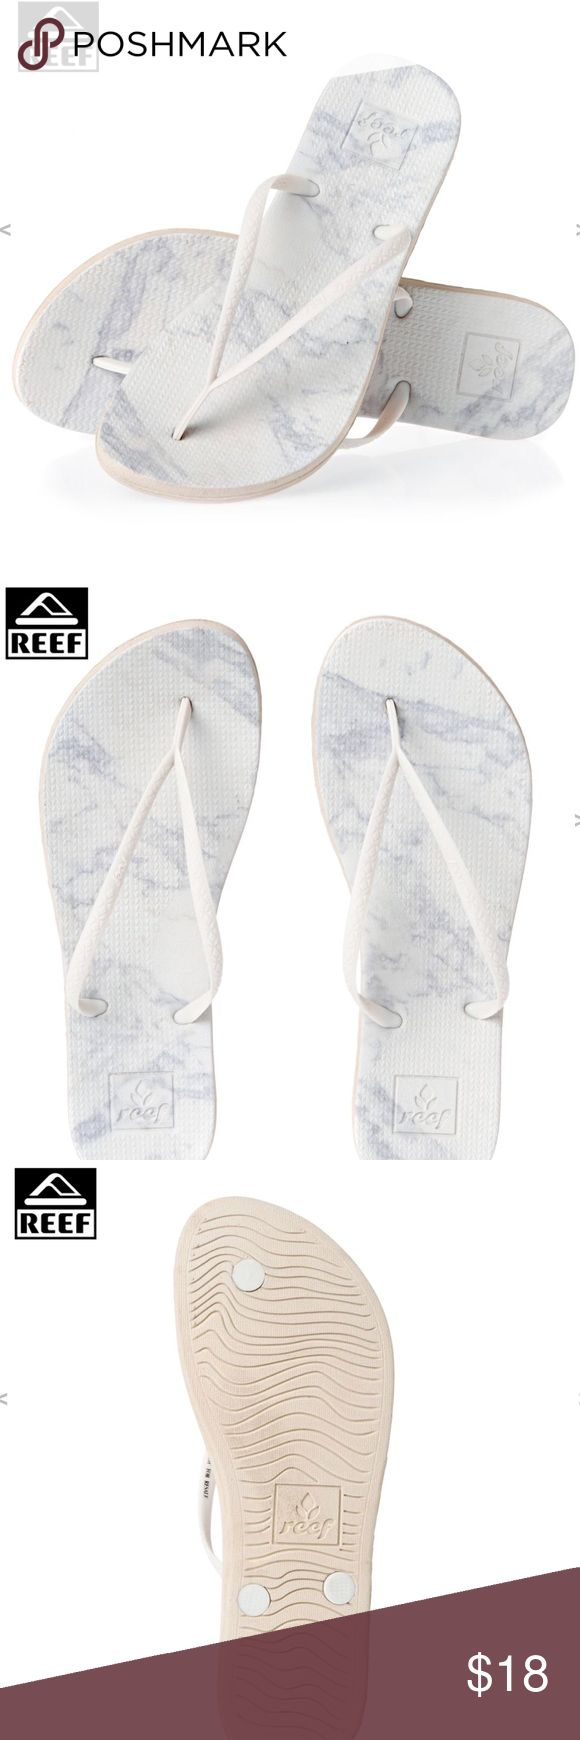 Reef Escape Lux Print White Sandal Flip Flop ❤️✨Feel free to make an offer! ✨❤️ ✨New with Tags!  White Lix marble print sandals made for extreme comfort!   Features: Women's Reef Flip Flops Fit: Regular fit Durable and soft Reef cushion rubber Eco friendly PVC free strap Reef logo detailing Abrasion resistant Textured footbed and outsole Material: EVA, rubber Reef Shoes Sandals